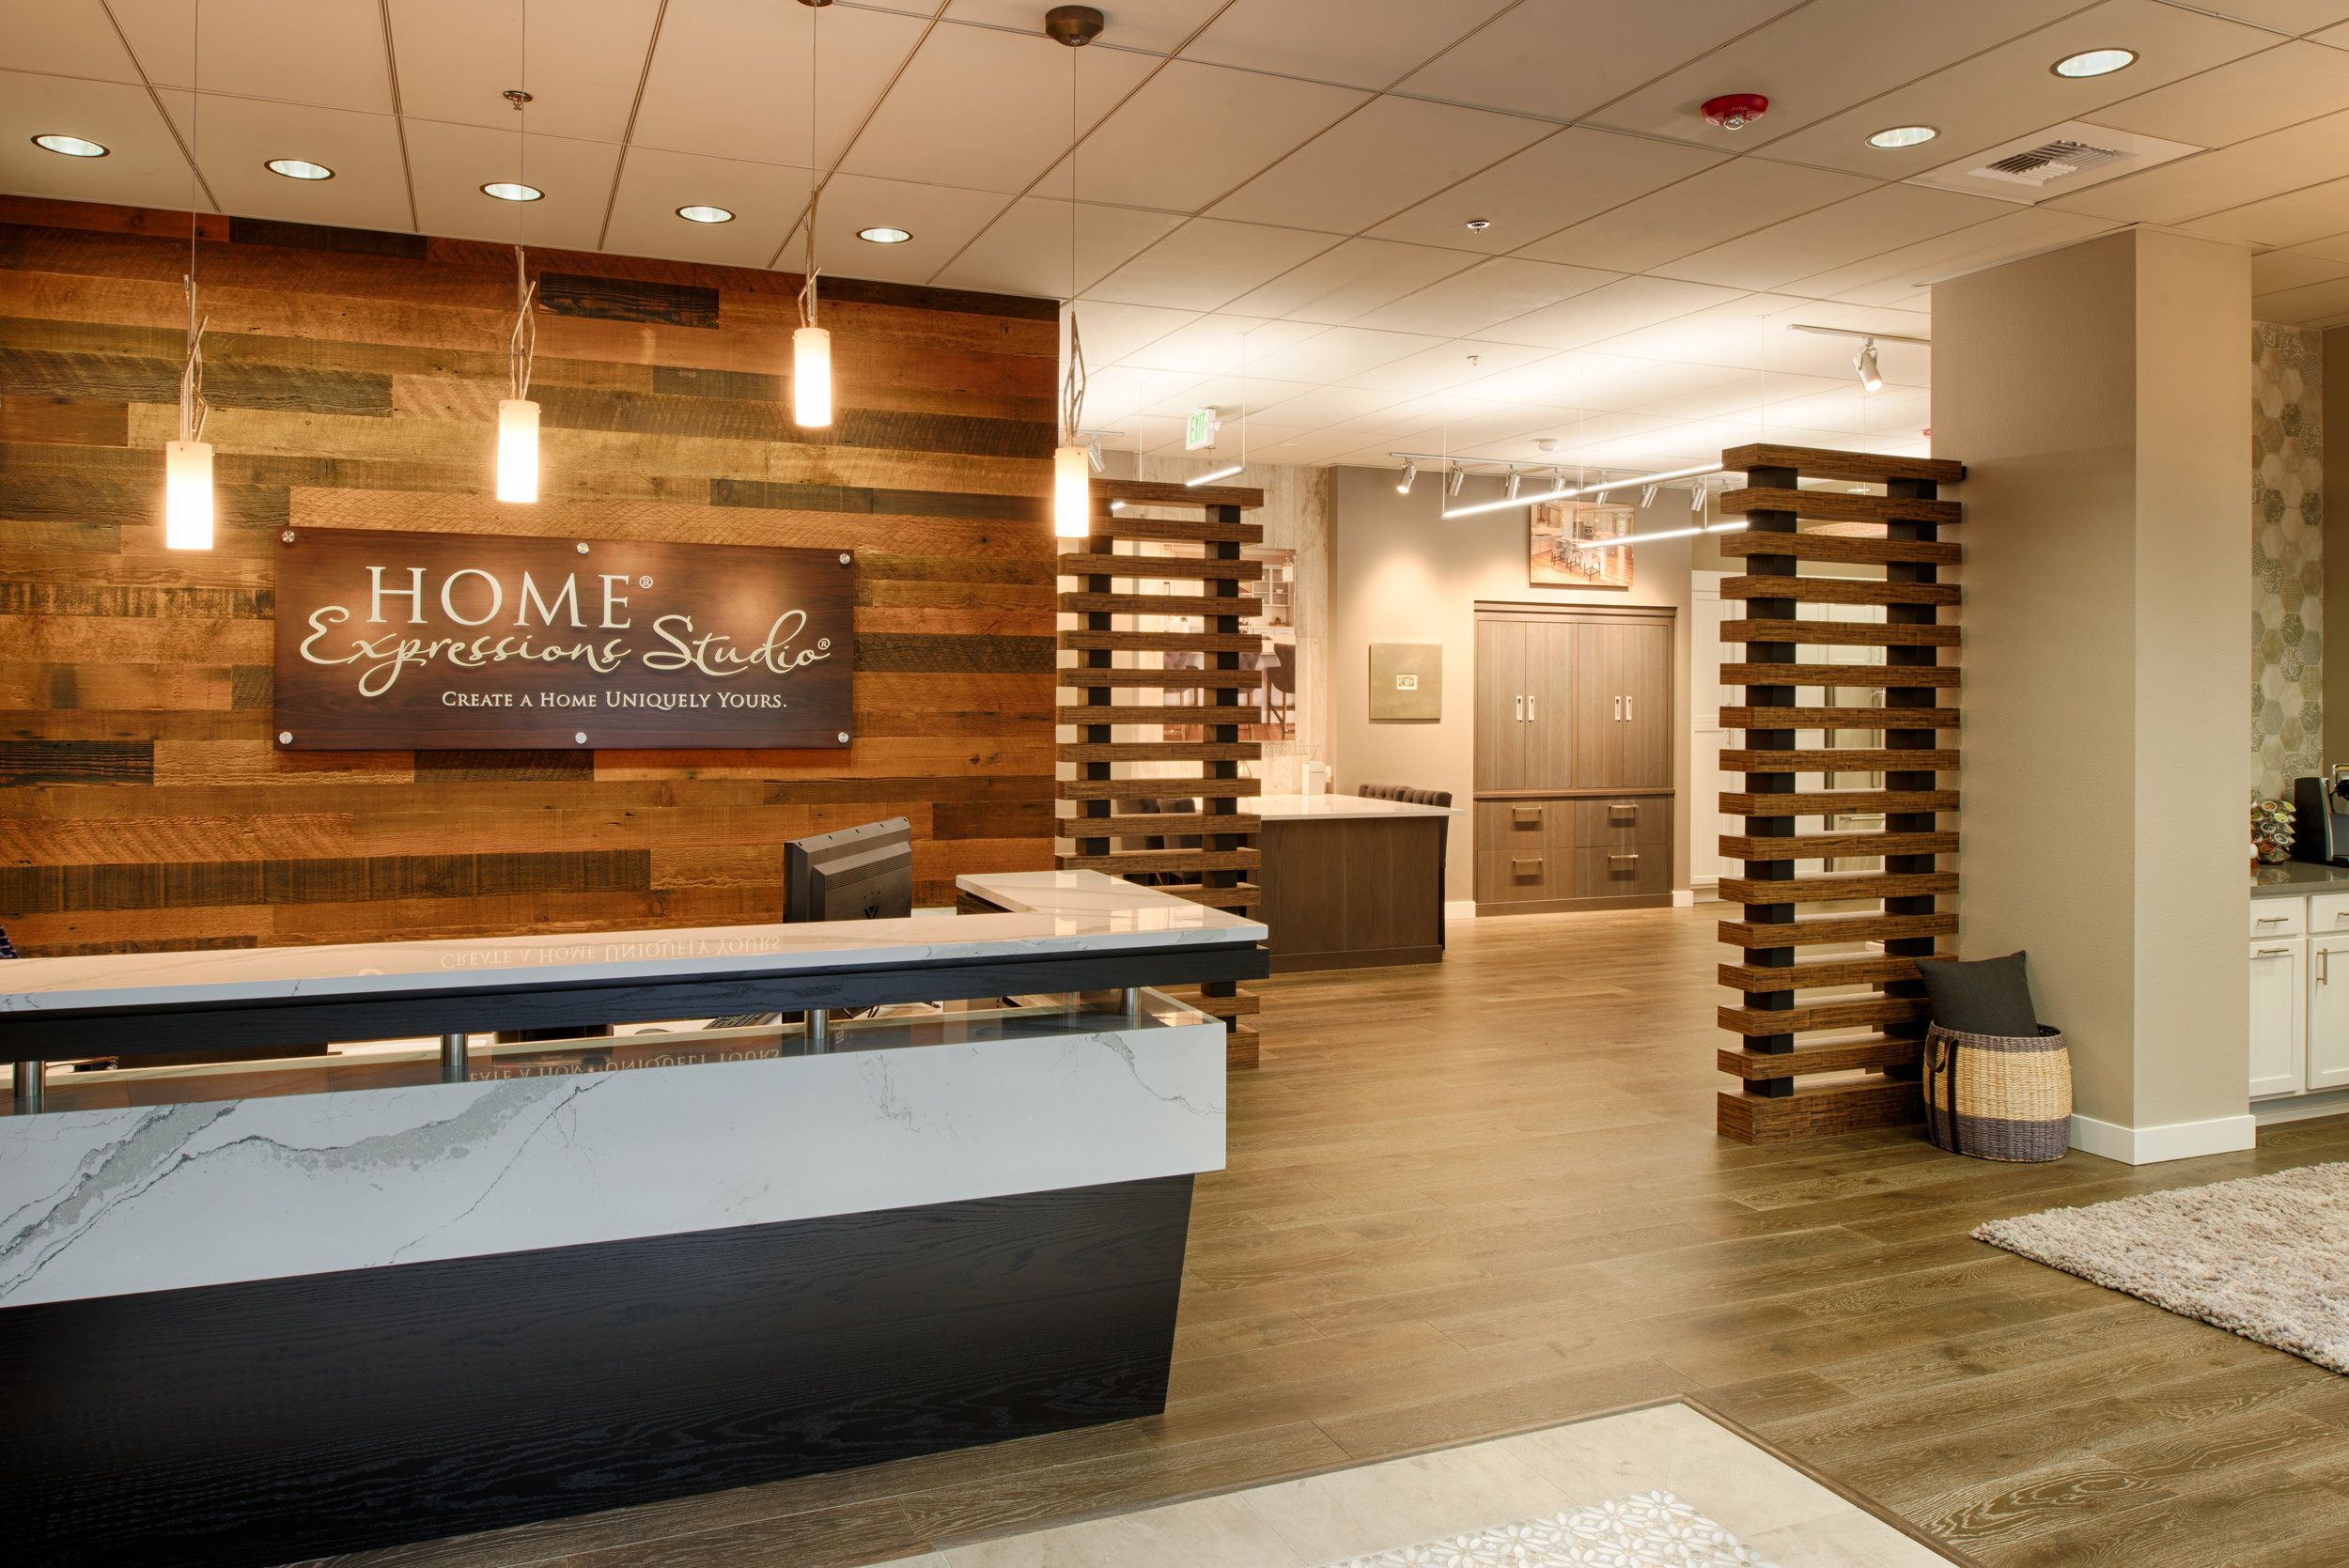 The Expressions Gallery Is A 4 200 Retail Showroom For Pulte Homes